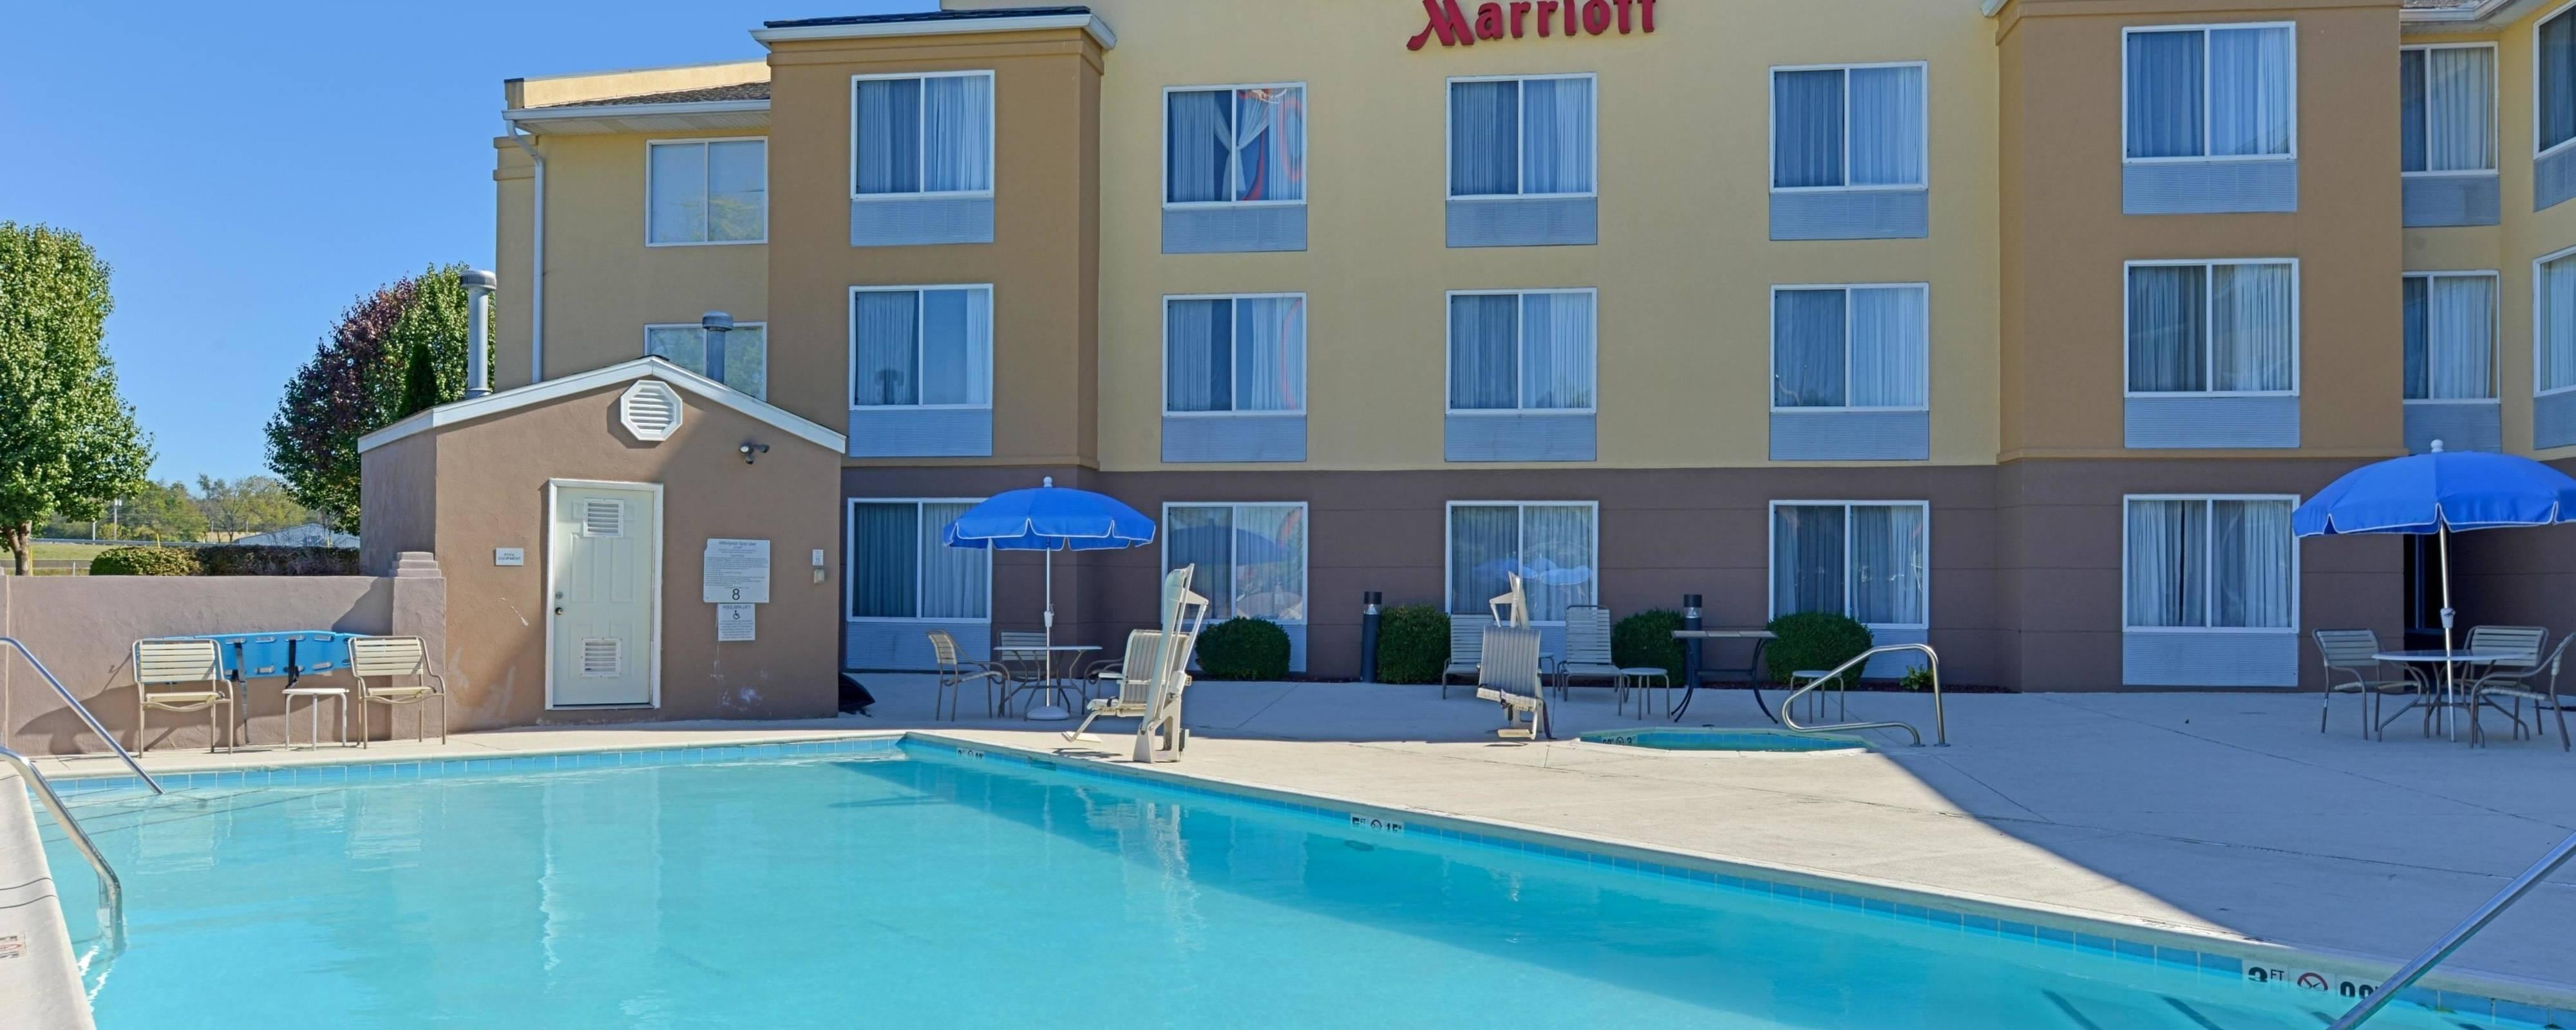 Fairfield Inn & Suites Georgetown Pool